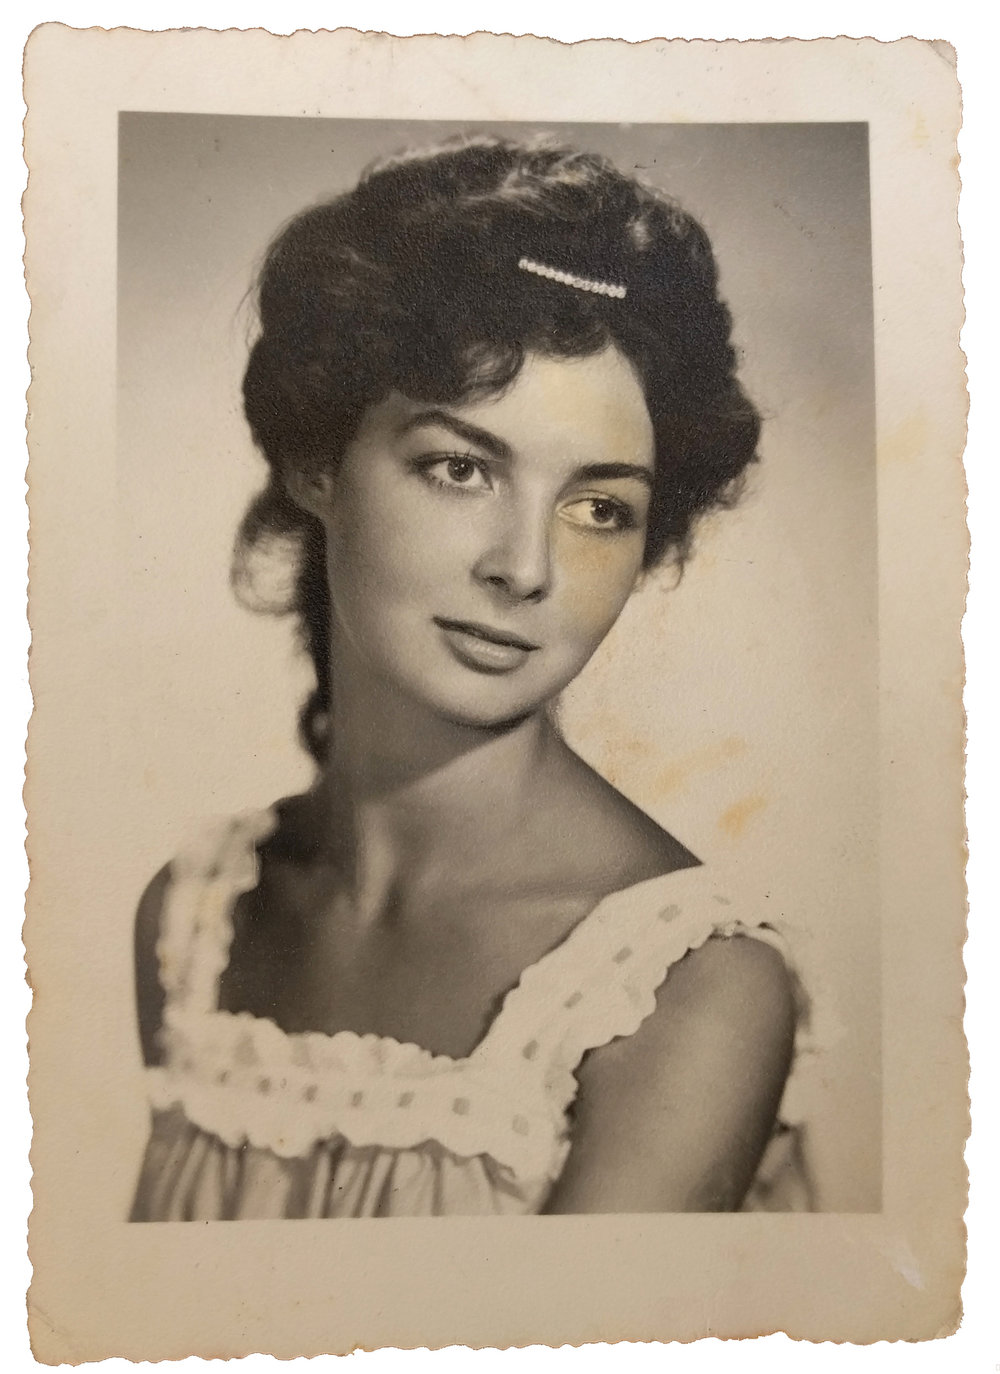 Young Cosetta Bimbi, August 1960. Image courtesy of the author.